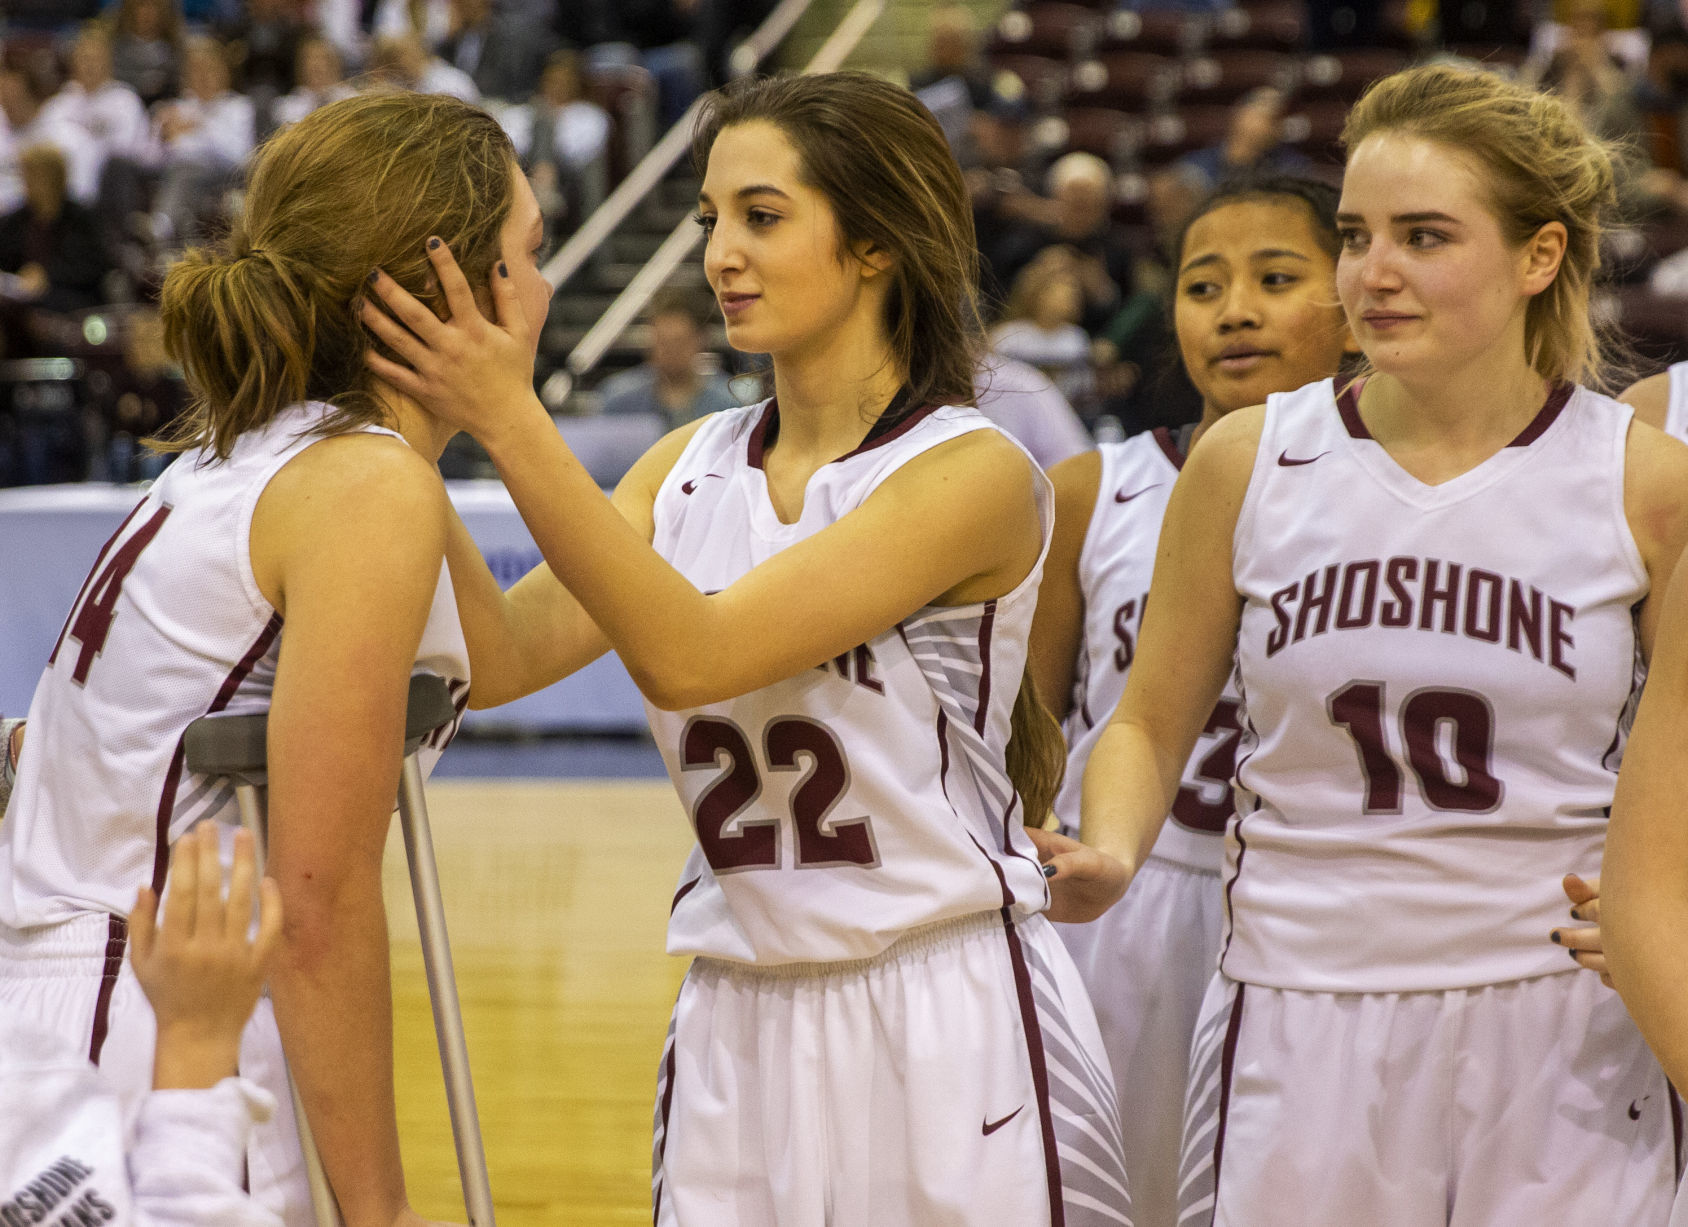 PHOTOS: Shoshone claims 1A DI state title